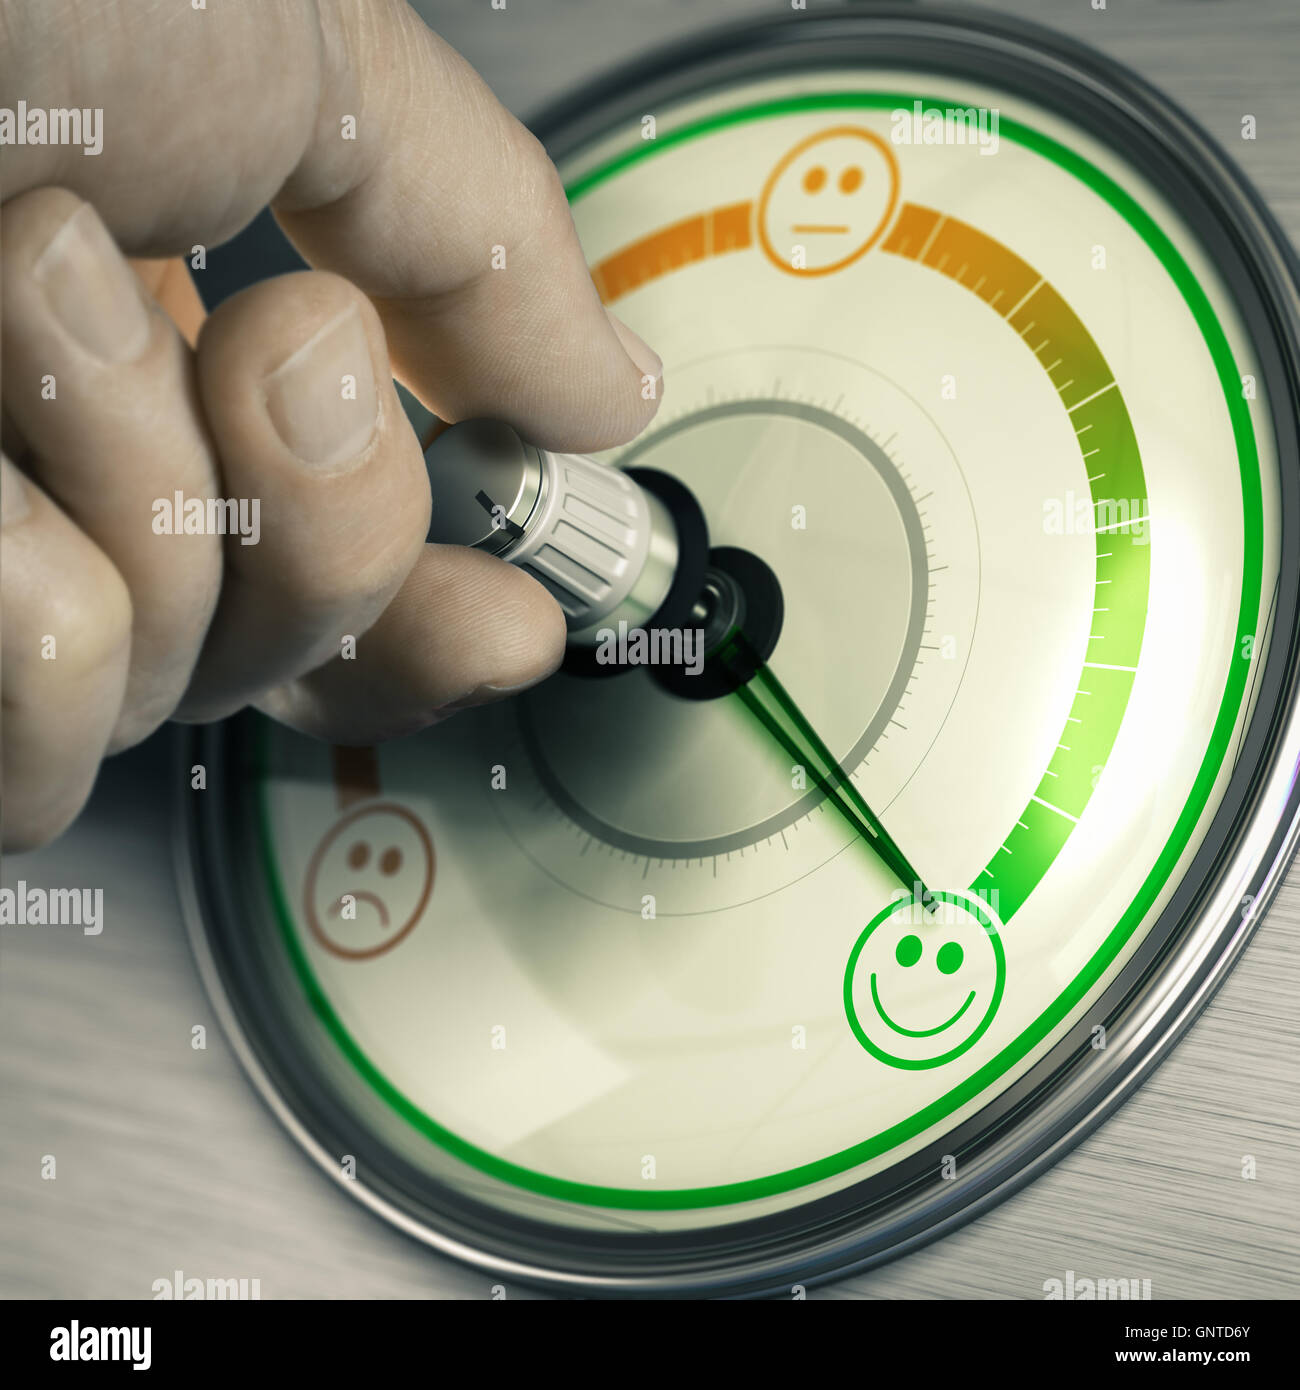 Close-up of a hand turning the knob of a customer feedback device to the highest position. Concept of good mood Stock Photo